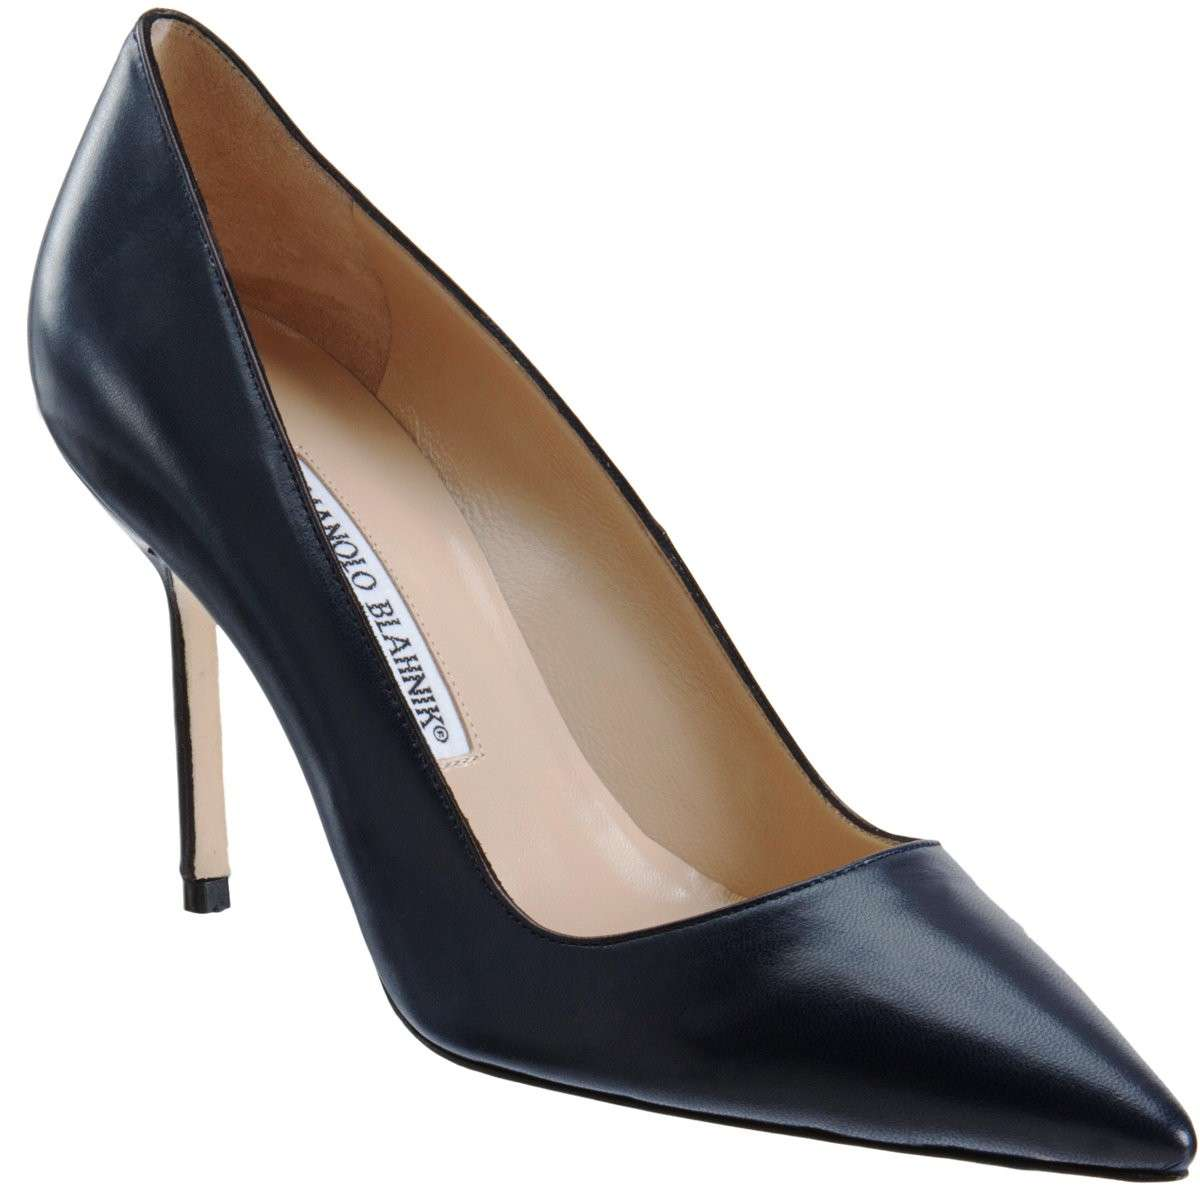 Pumps nere Manolo Blahnik